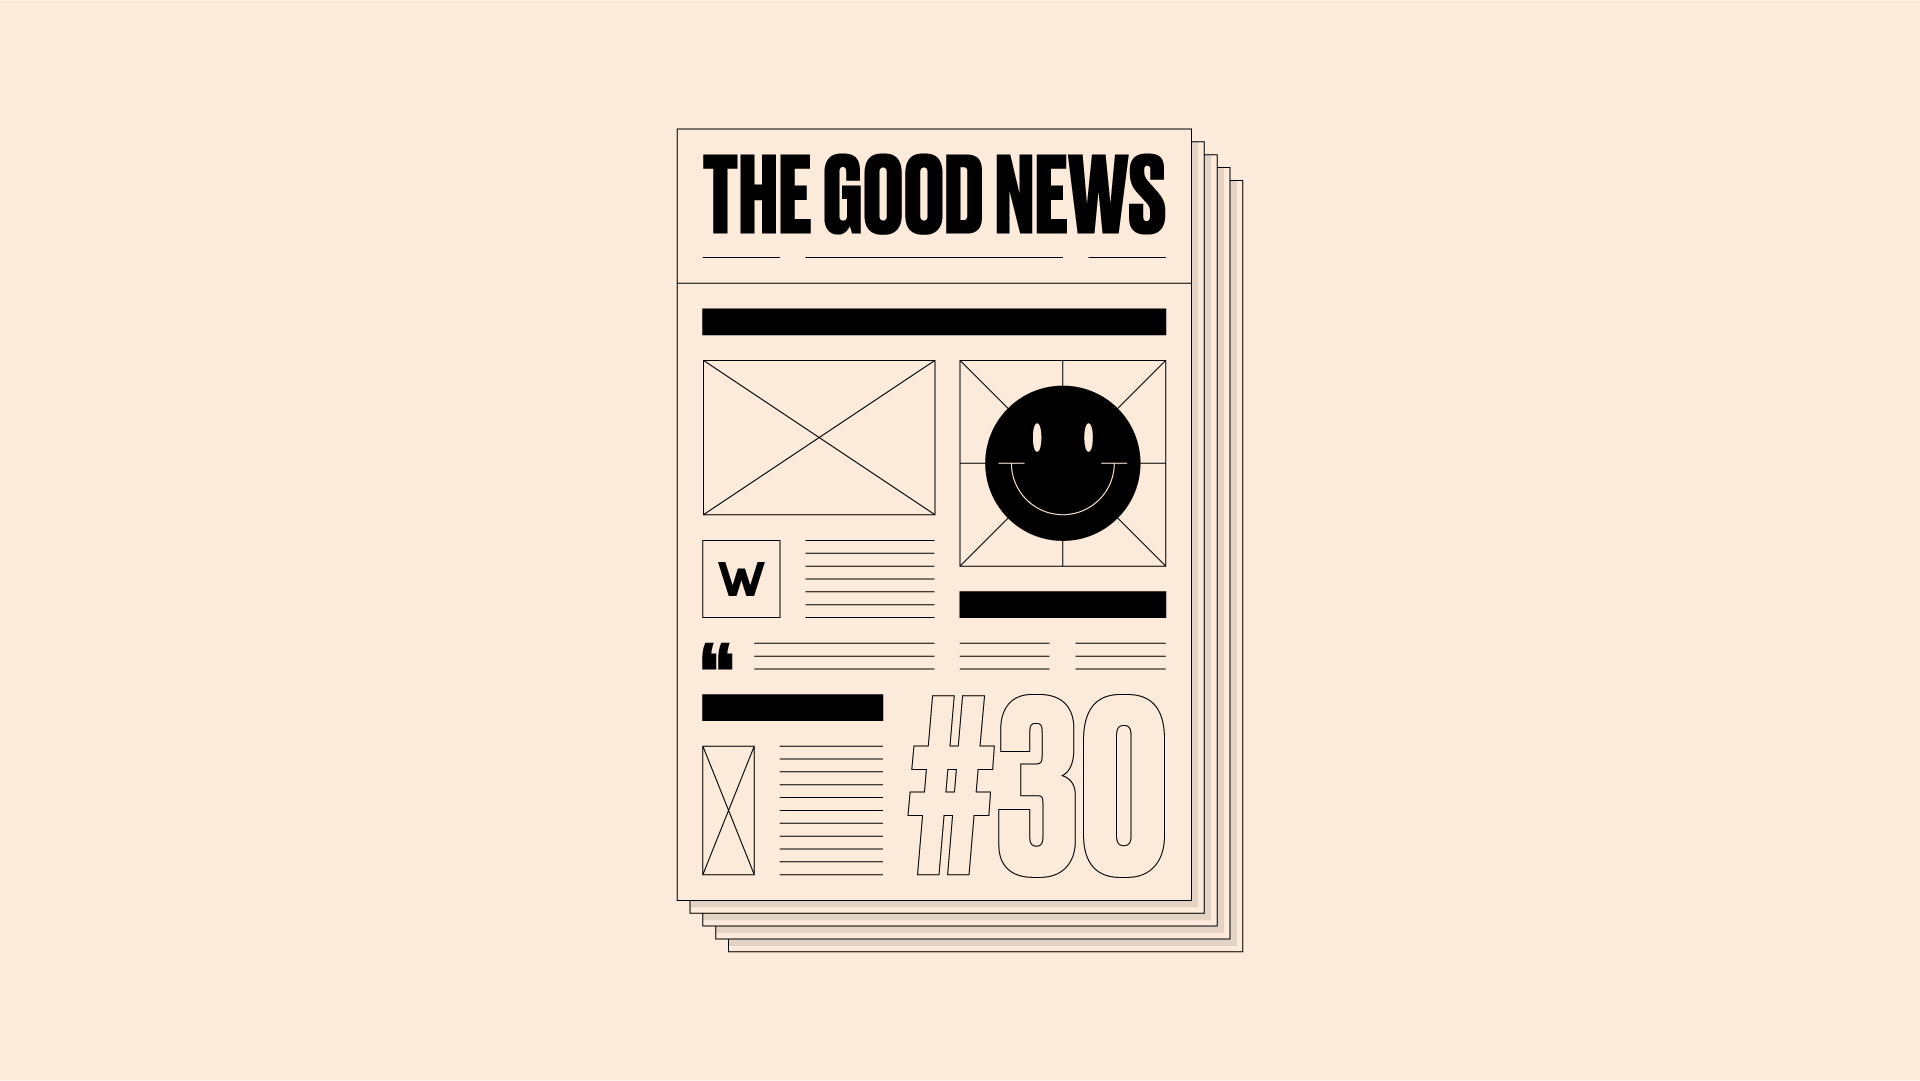 Image of newspaper front page, with 'The Good News #30' written on it - on a pale yellow background